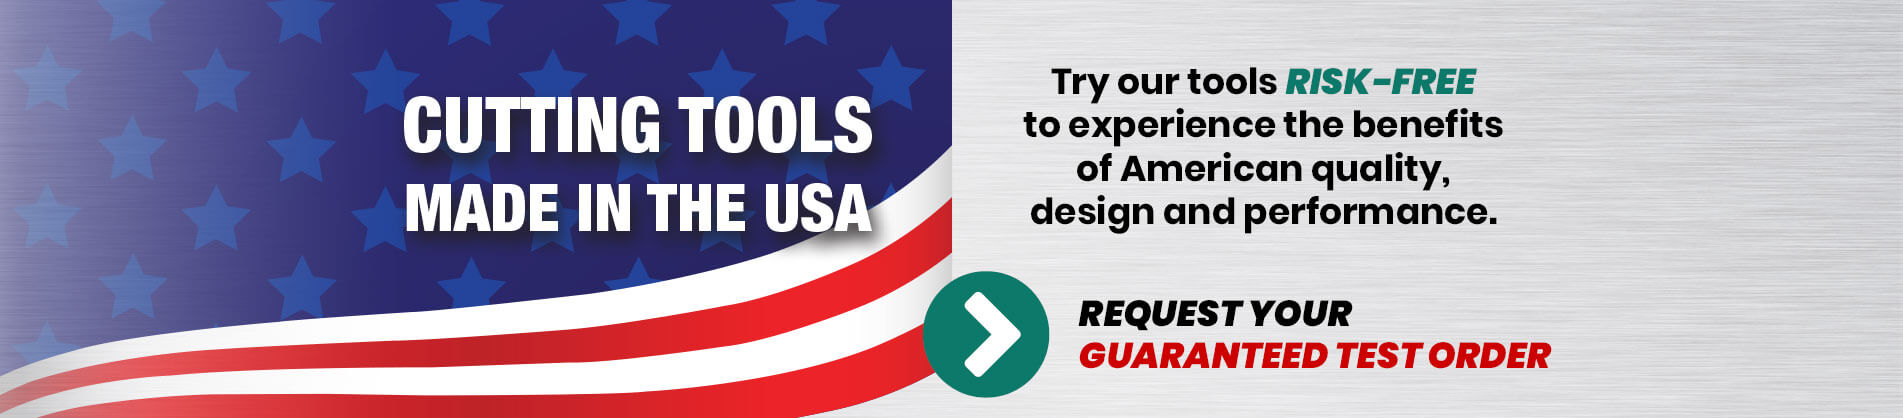 Cutting Tools Made in the USA - Request a Guaranteed Test Order